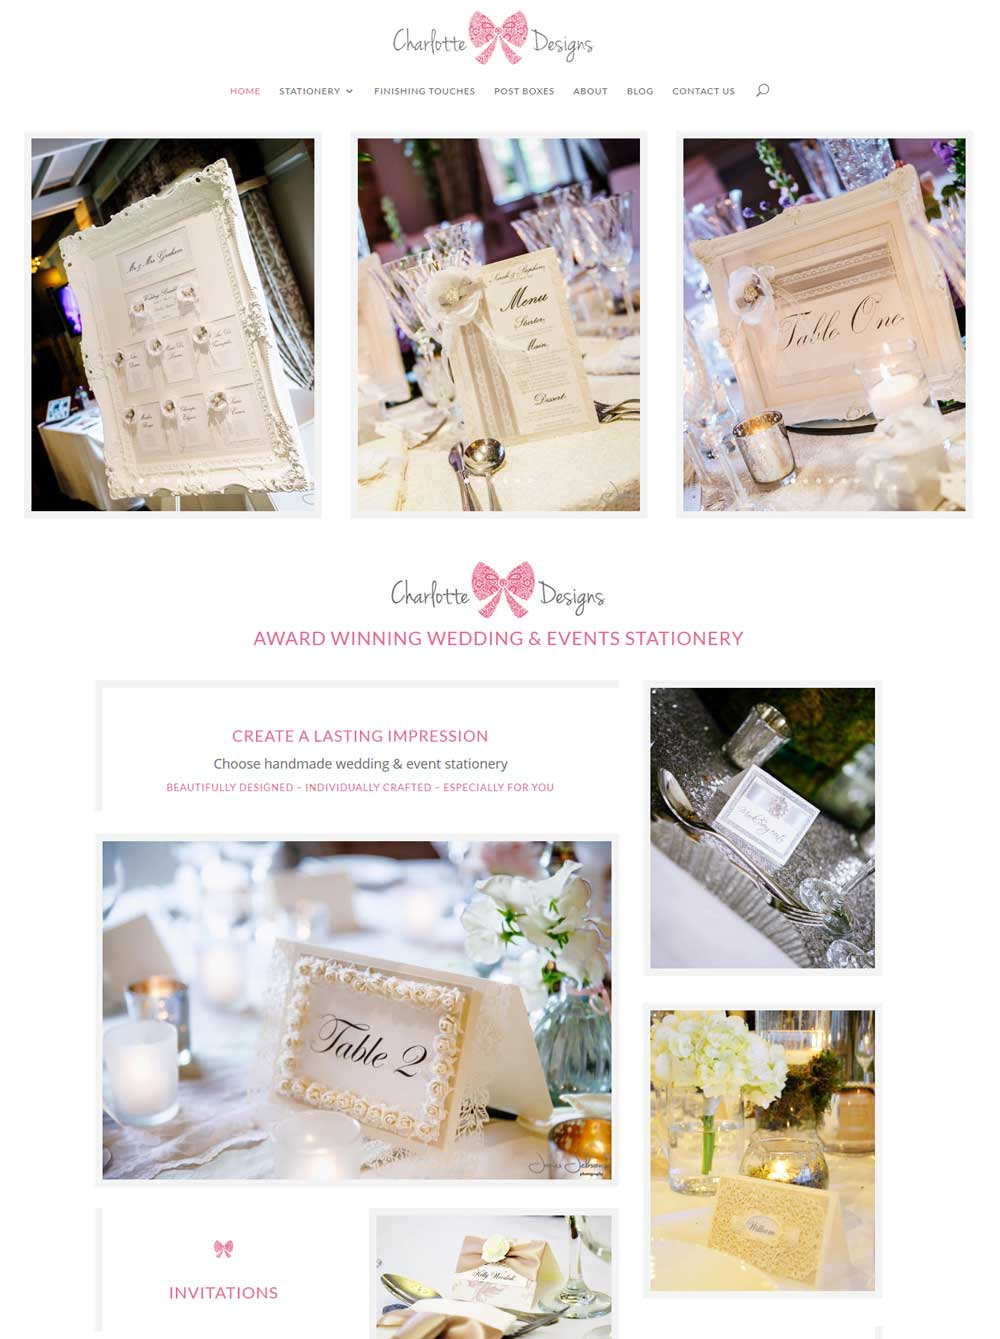 The stunning Charlotte Designs website design by Bernie Bradley Websites